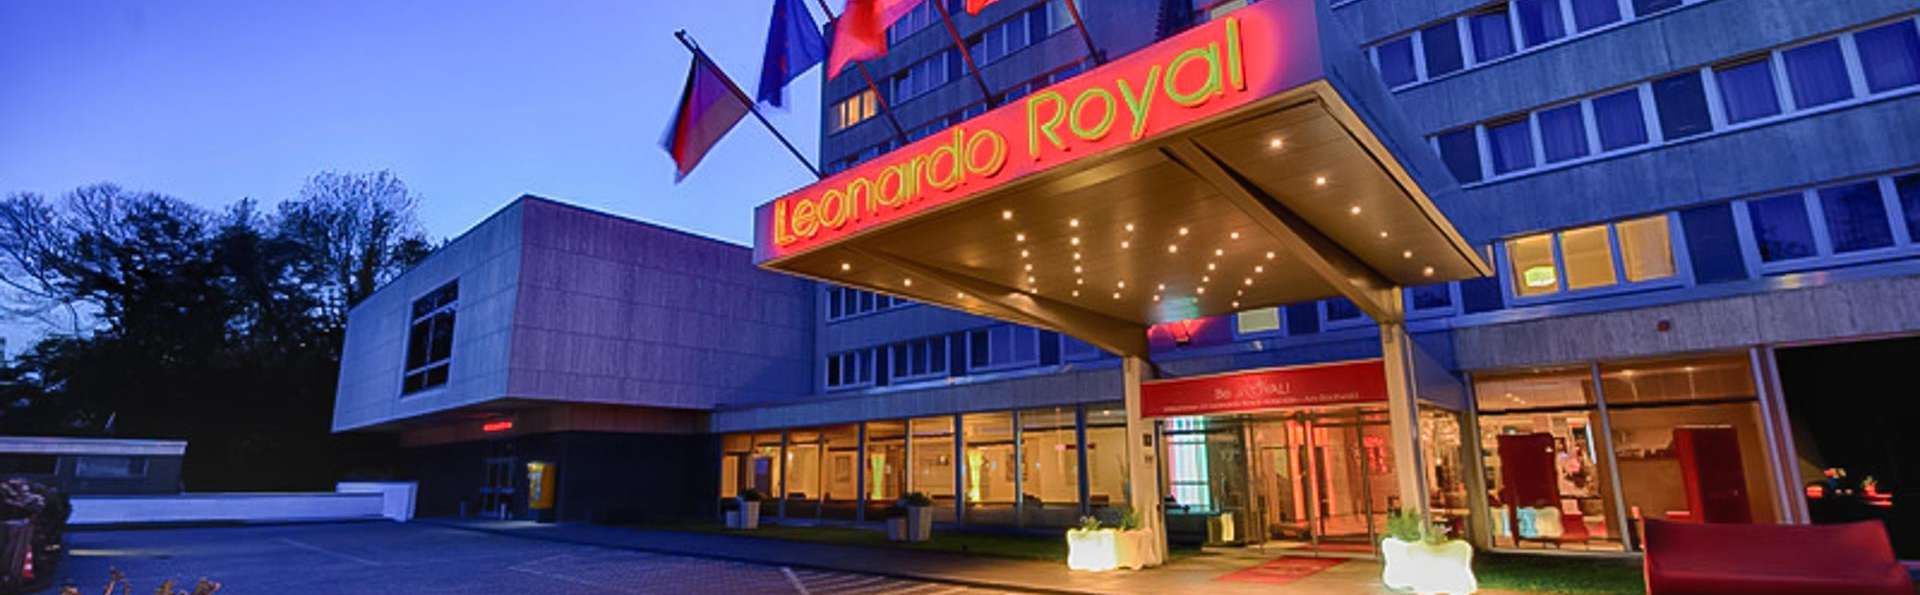 Leonardo Royal Hotel Koeln-Am Stadtwald - EDIT_FRONT_10.jpg